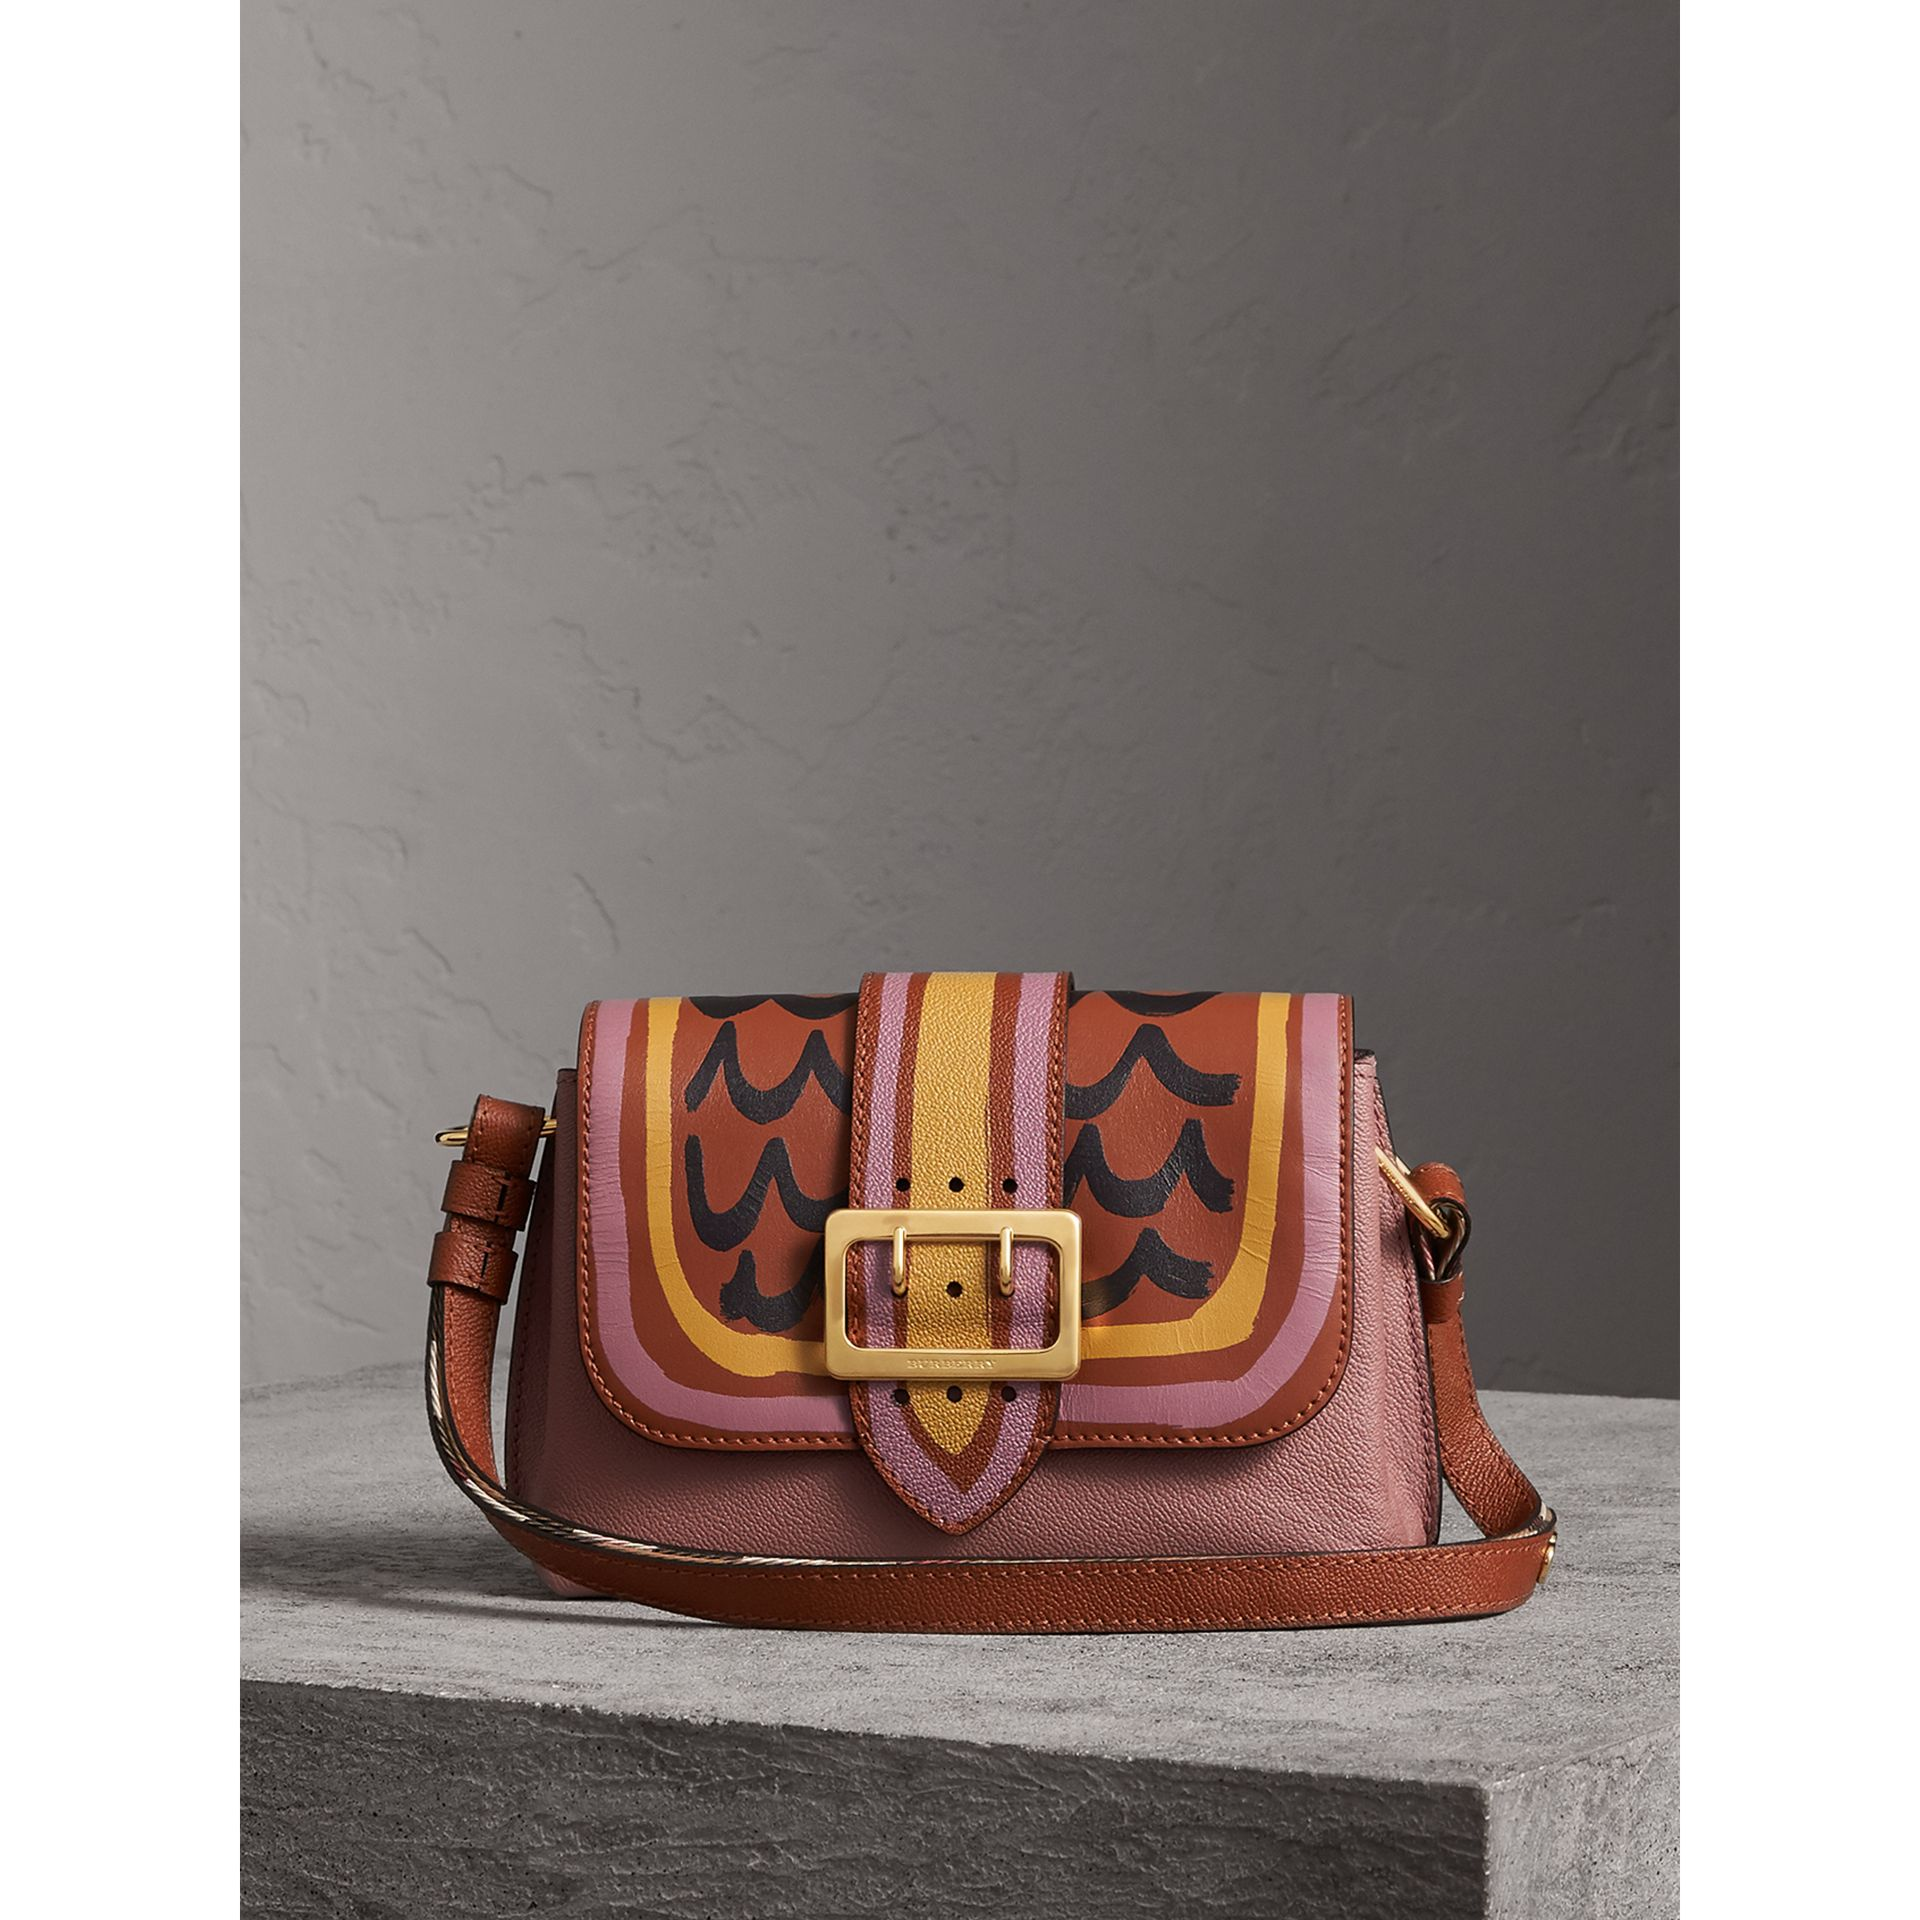 The Buckle Crossbody Bag in Trompe L'oeil Leather in Dusty Pink/bright Toffee - Women | Burberry - gallery image 1